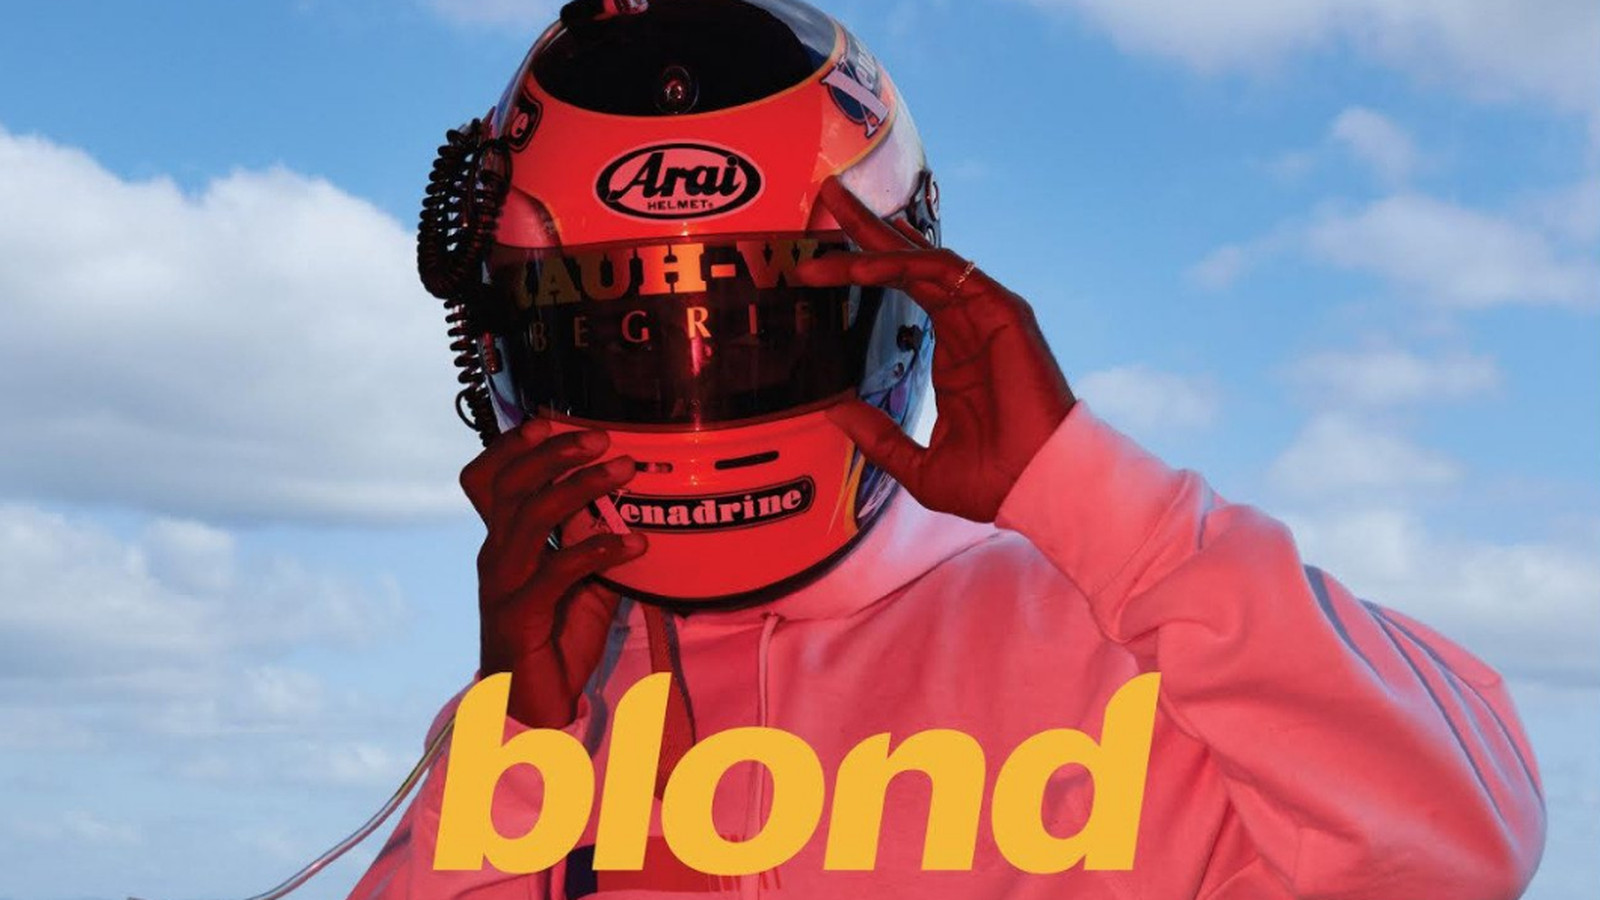 Boy With Car Hd Wallpaper Frank Ocean S Blonde Exists In A Beautiful Limbo The Verge